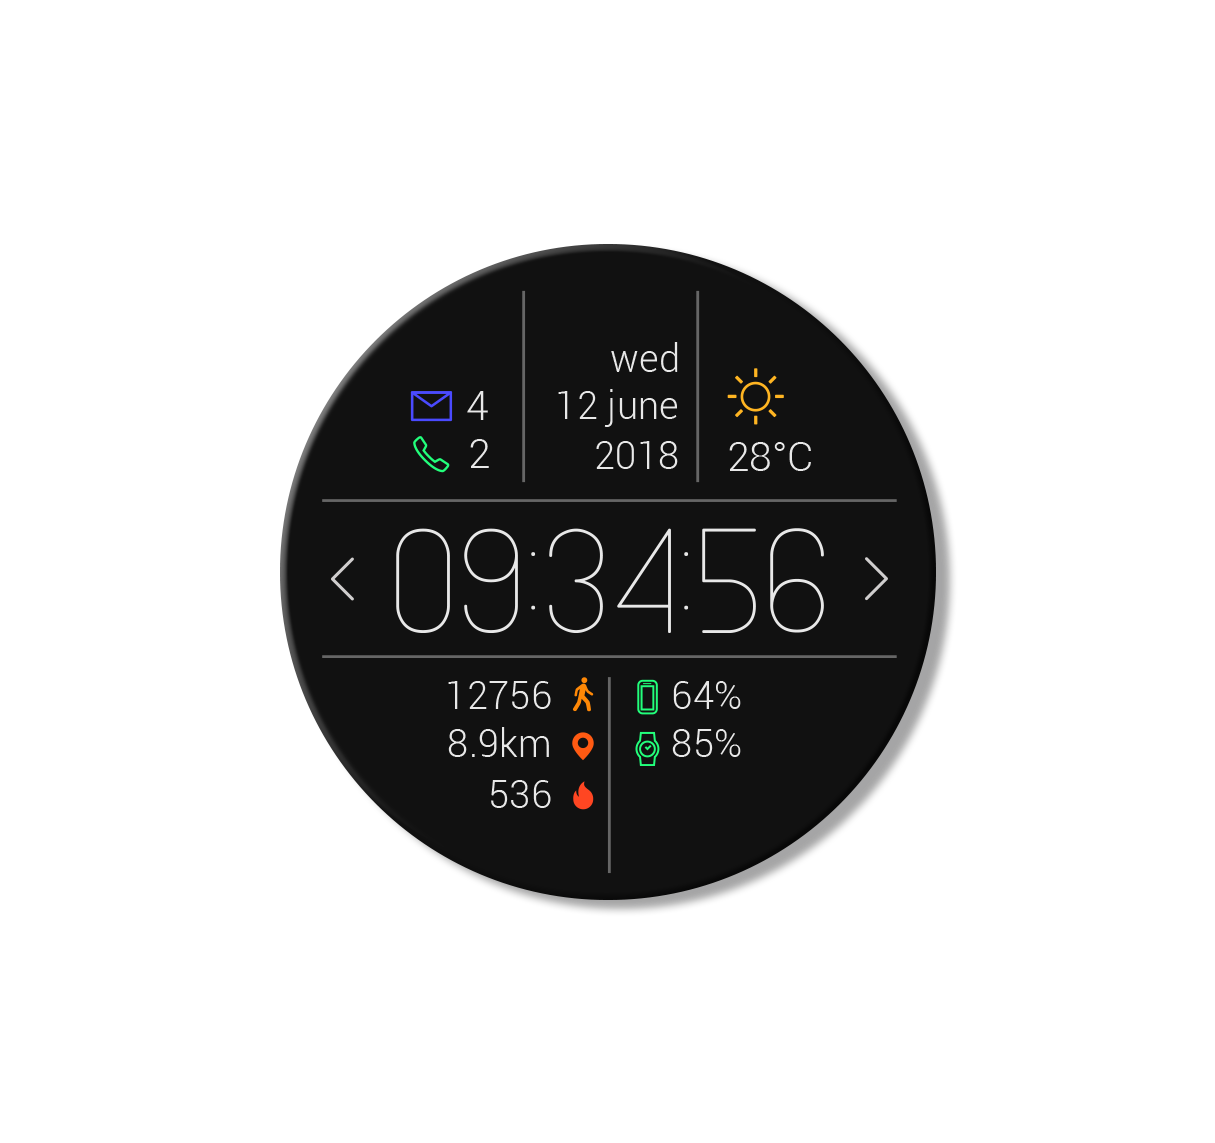 Primary Watch Face : Primary Watch Face